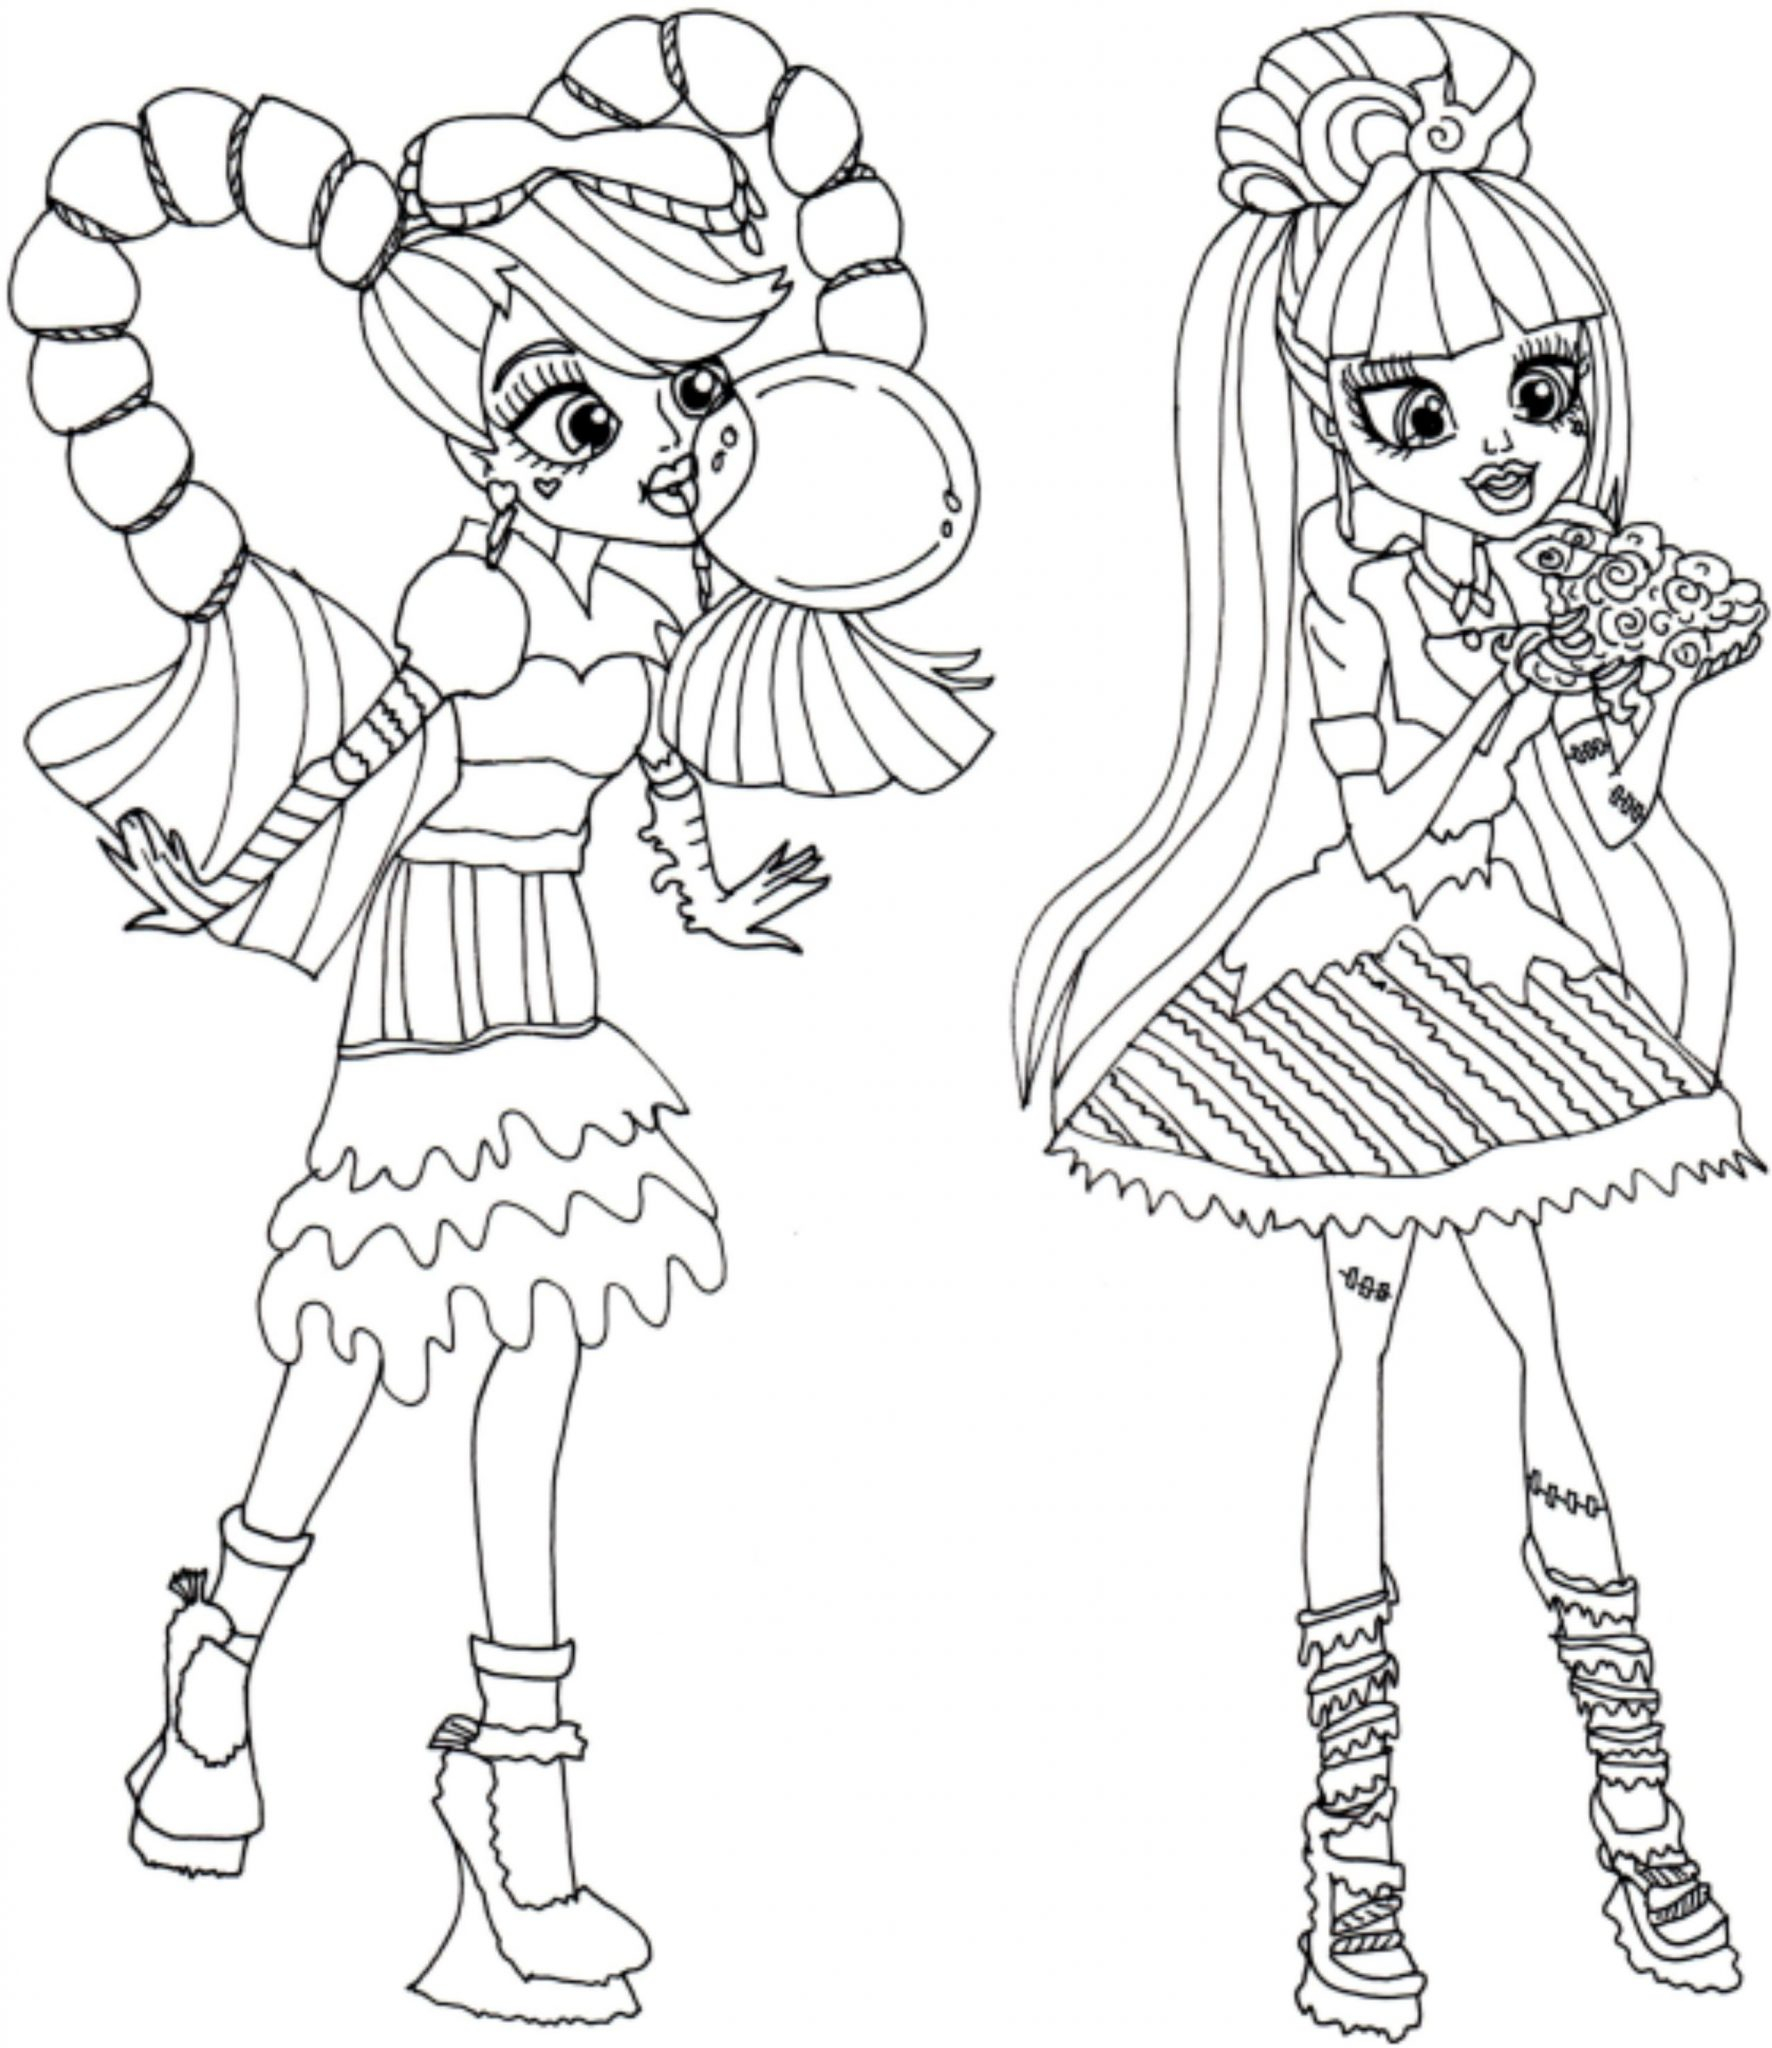 Inspiration Free Printable Monster High Coloring Pages Brand Boo Download Of Inspiring Monster High Coloring Pages Colouring Sheets Printables Gallery